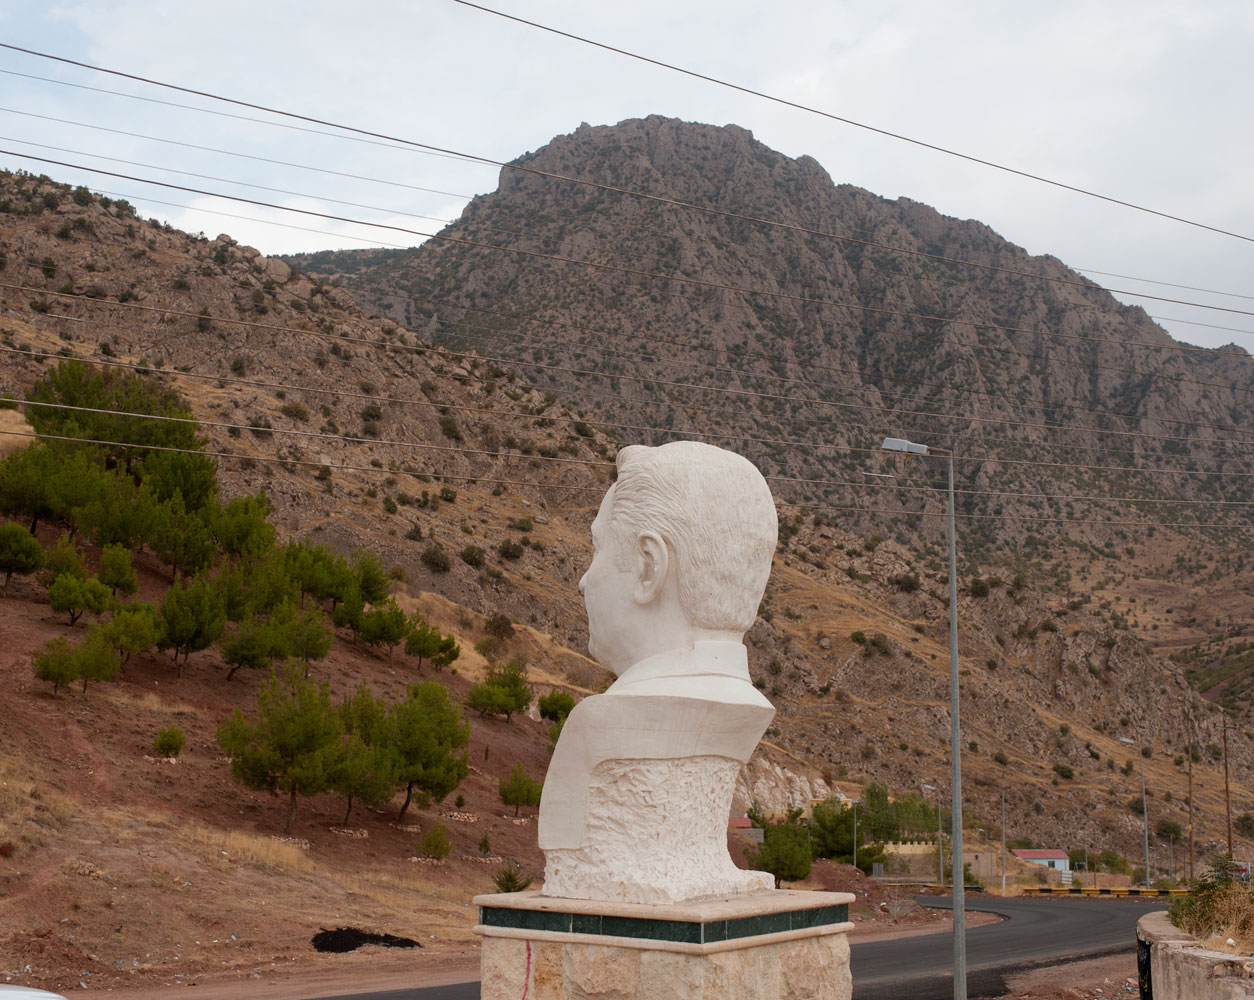 Donald Weber, War is Good*A statue of the famous Kurdish singer Tehsin Taha, from the town of Amedi. The statue was made post-Saddam, as Kurdish customs and culture were suppressed for many years.